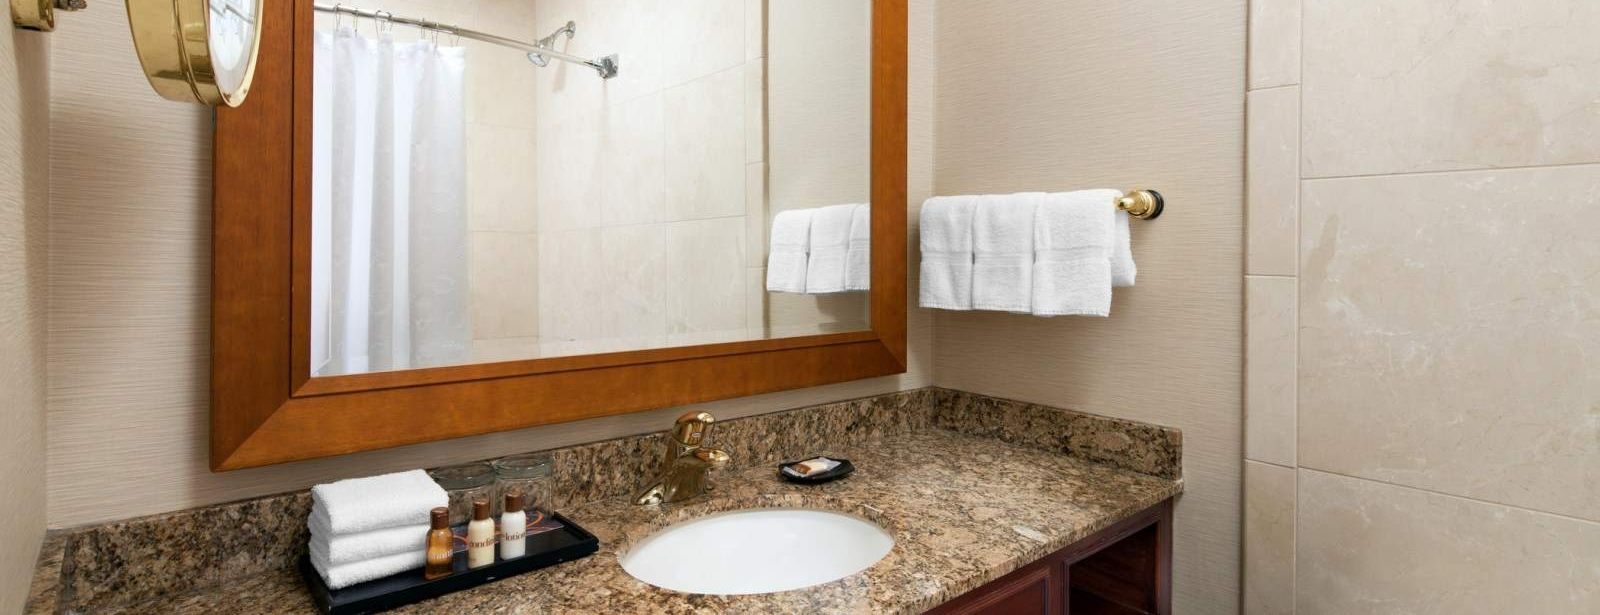 Traditional Room Bathroom Vanity - Sheraton La Jolla